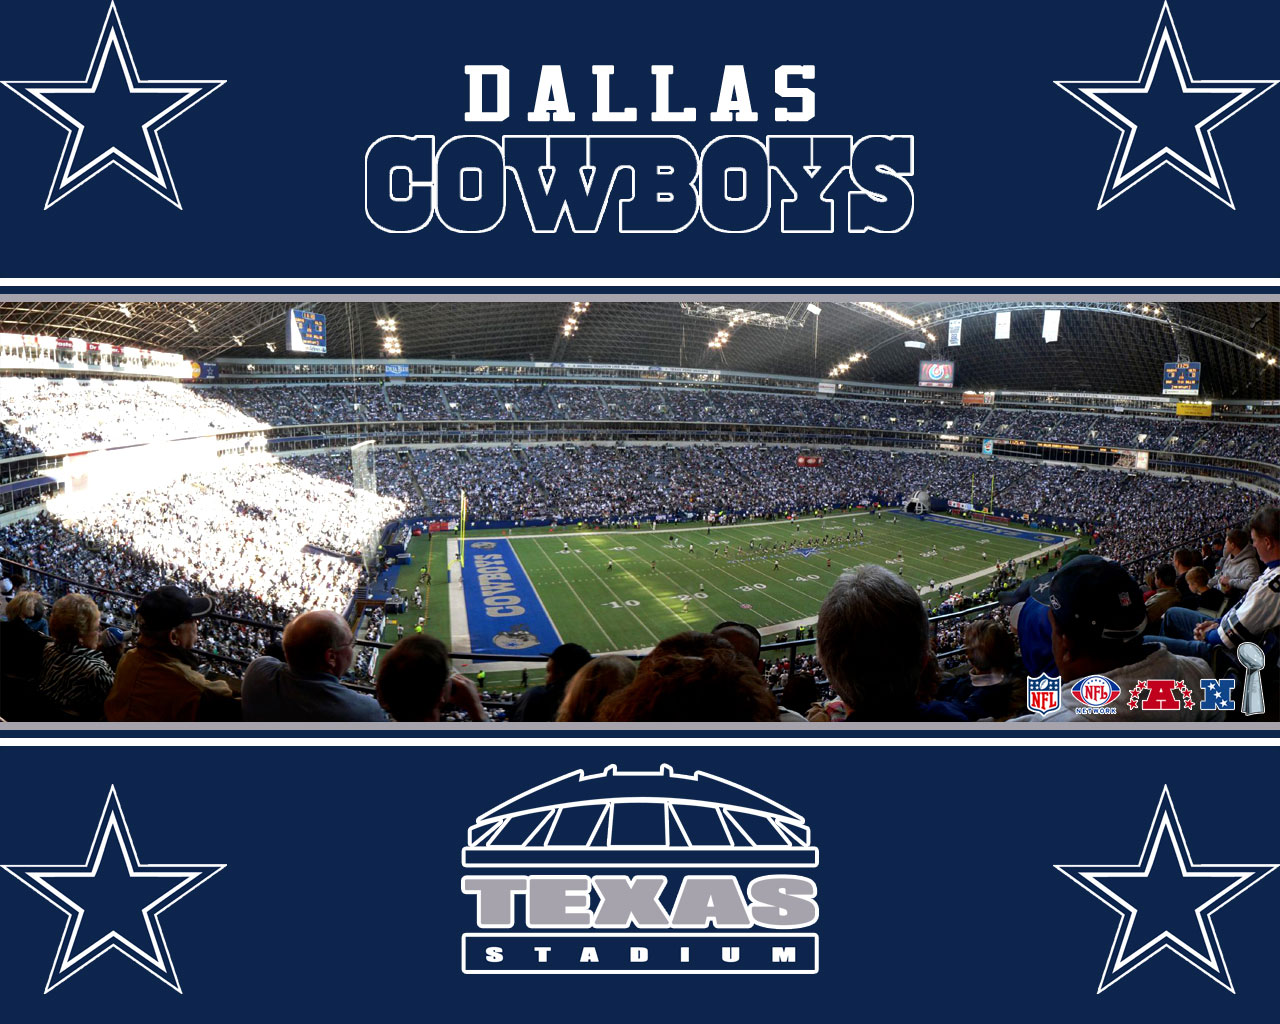 Inspirational Wallpapers With Quotes High Resolution Dallas Cowboys Stadium Wallpaper Pixelstalk Net